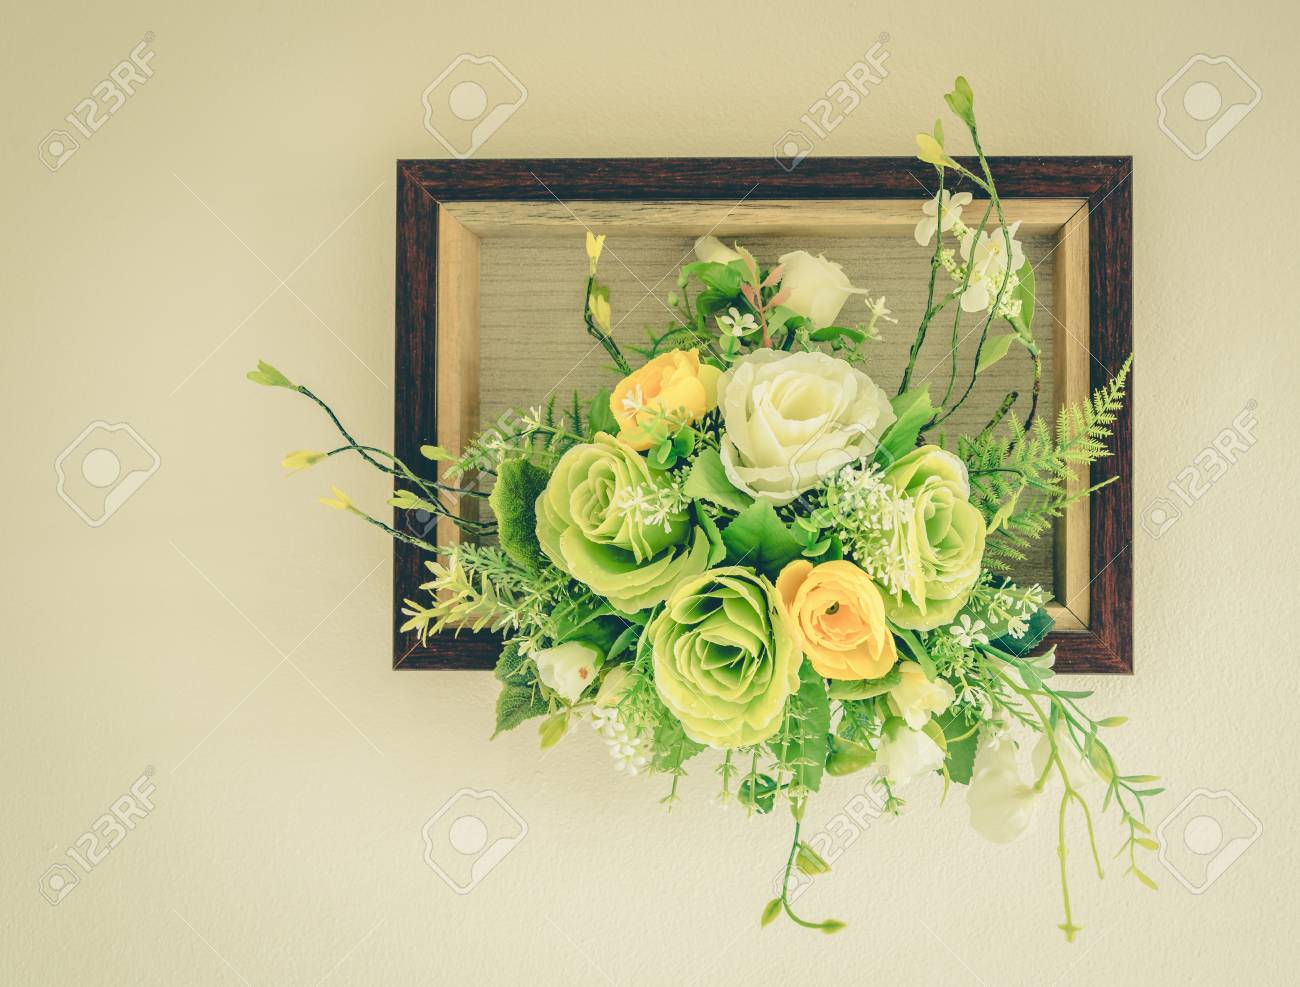 Fake Flowers With White Wall Vintage Stock Photo Picture And